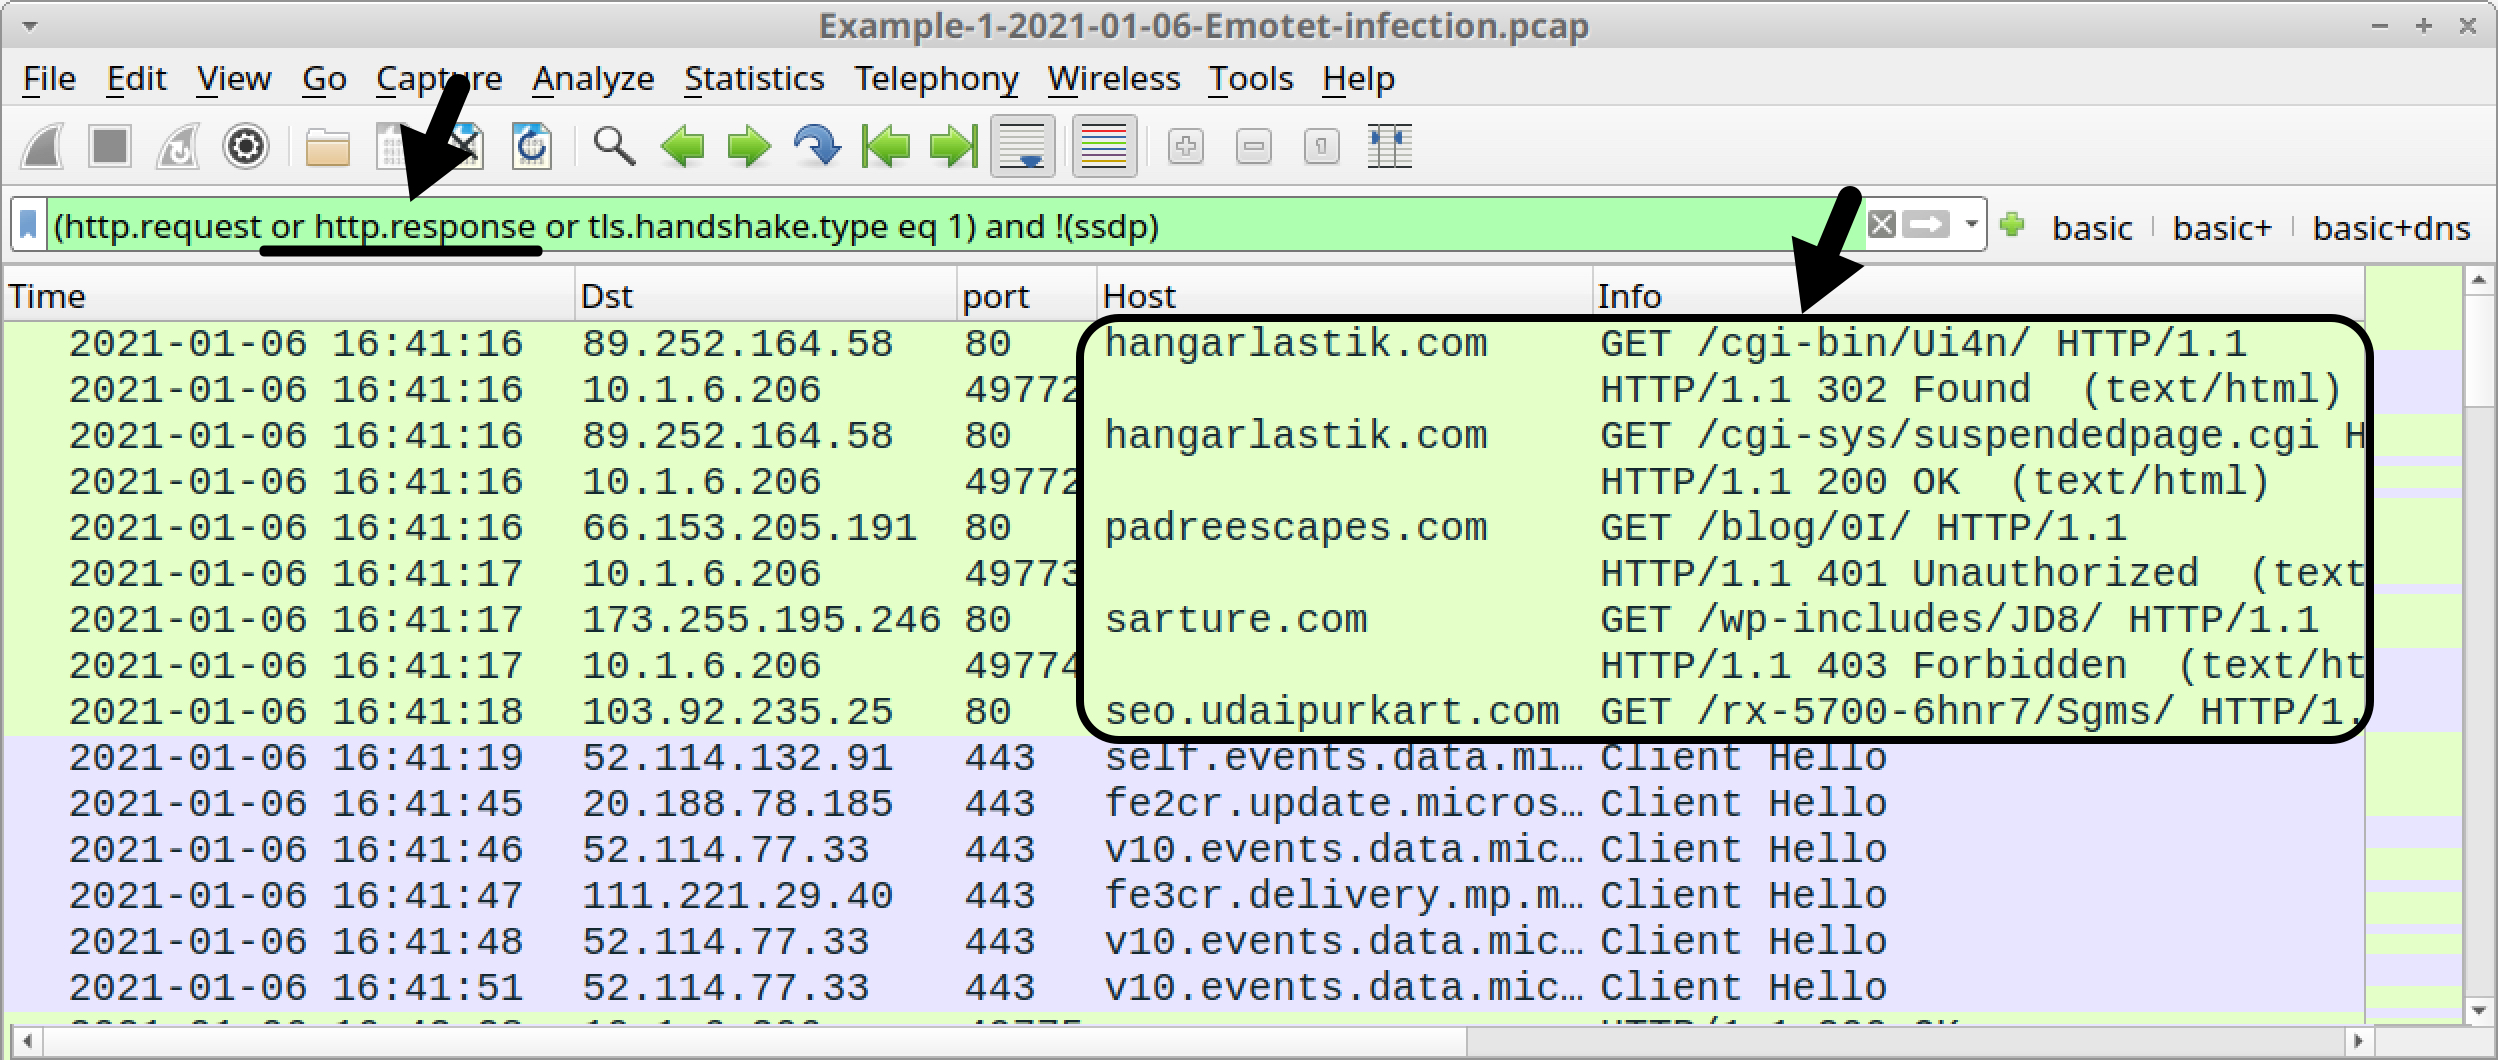 Figure 7. Adding HTTP responses to the Wireshark display filter.